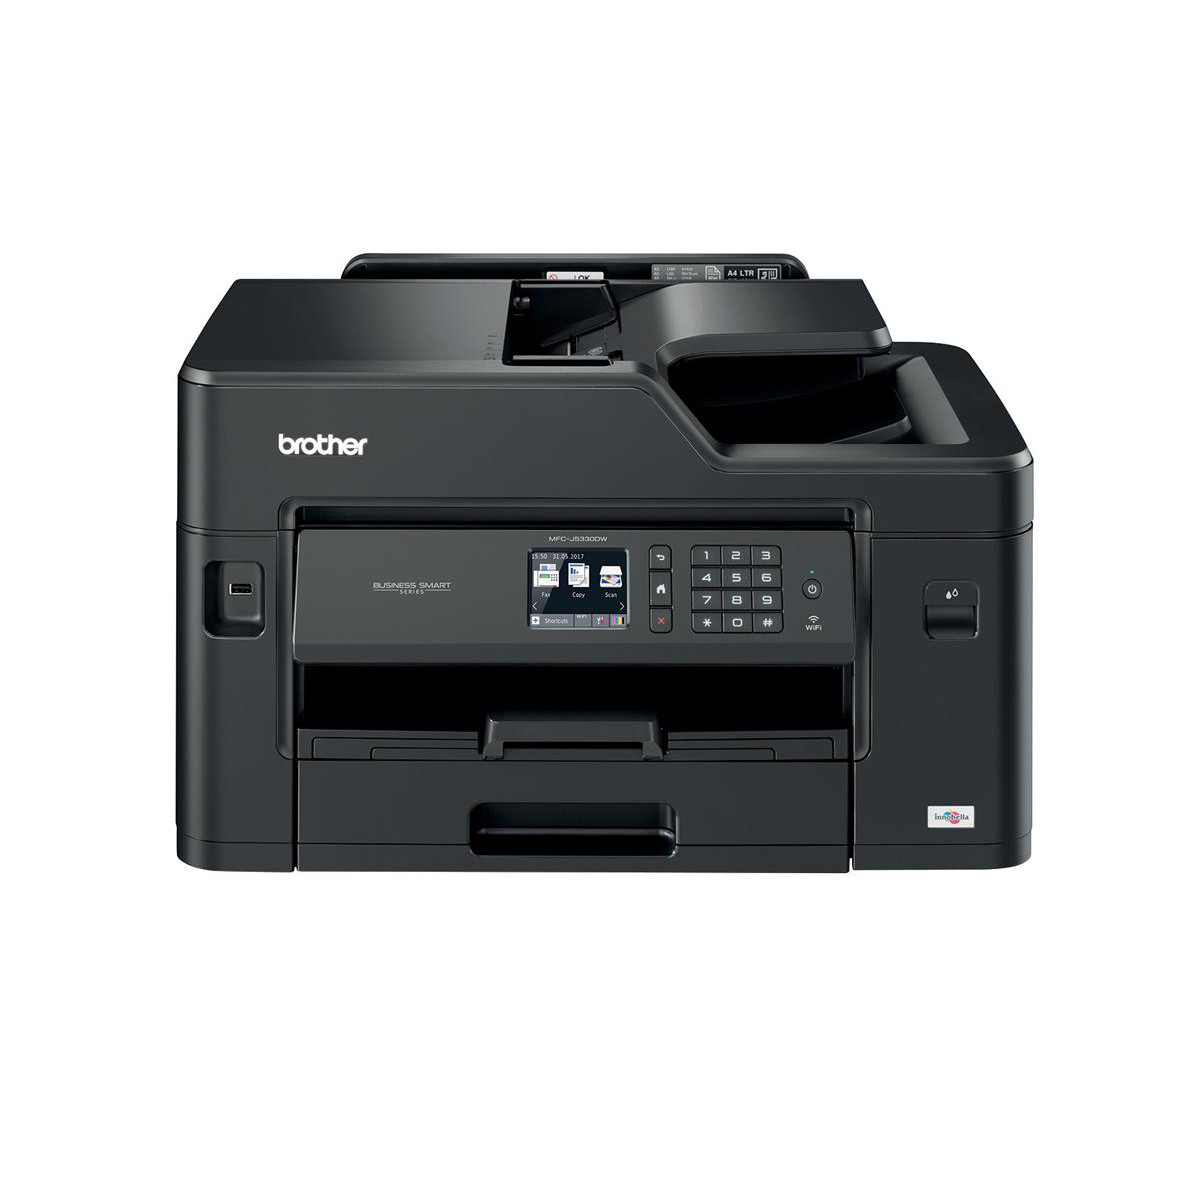 Brother MFCJ5330DW AIO Inkjet Printer